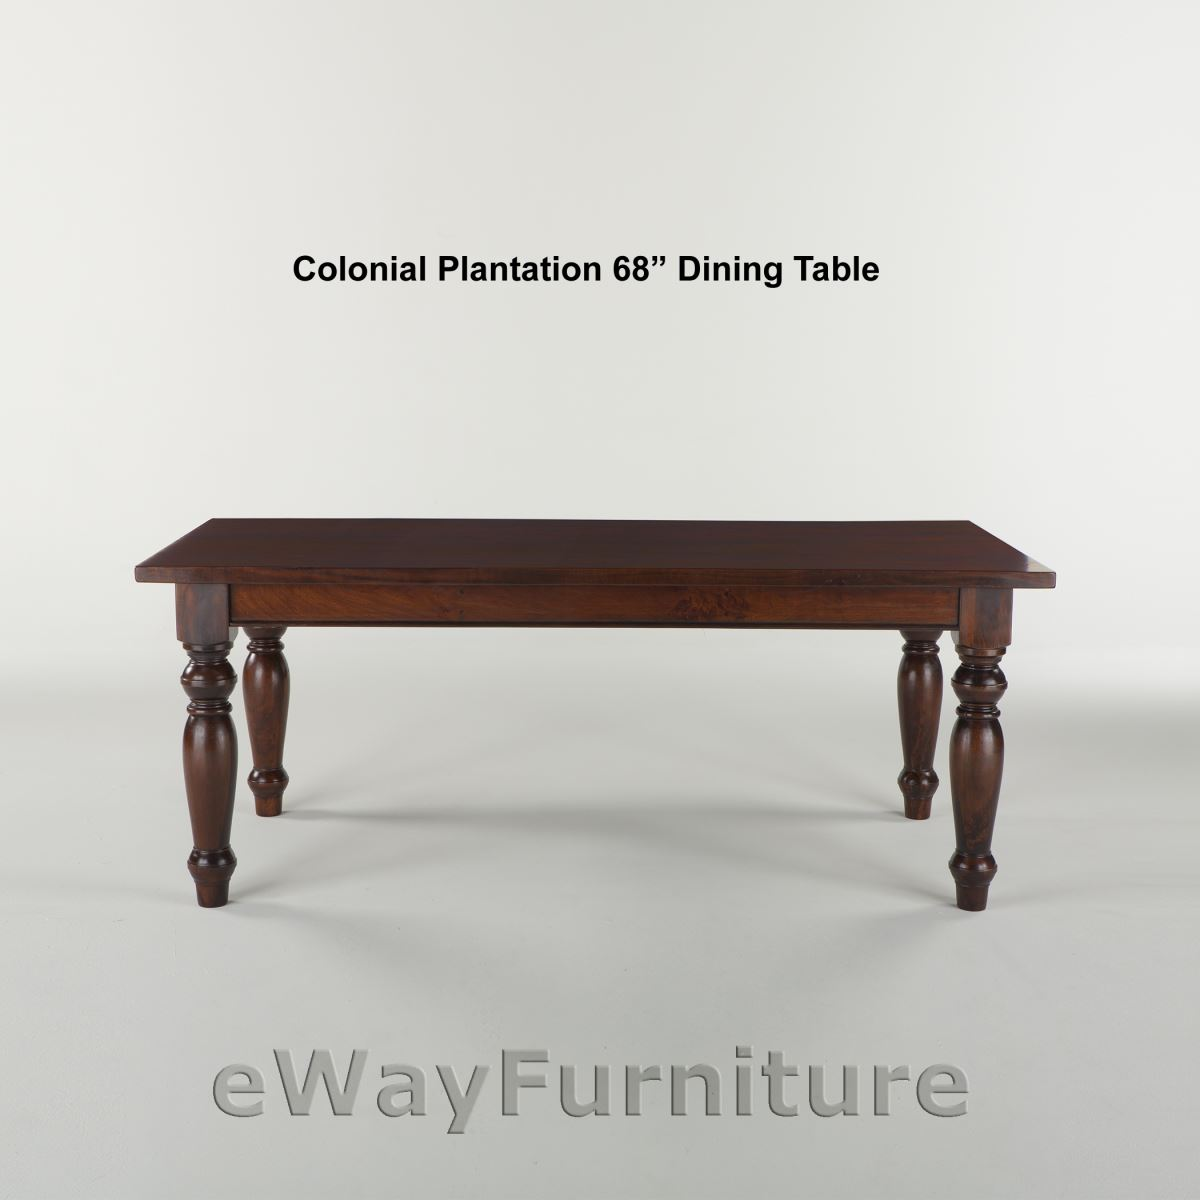 Colonial Plantation Inch Dining Table - 68 inch dining table